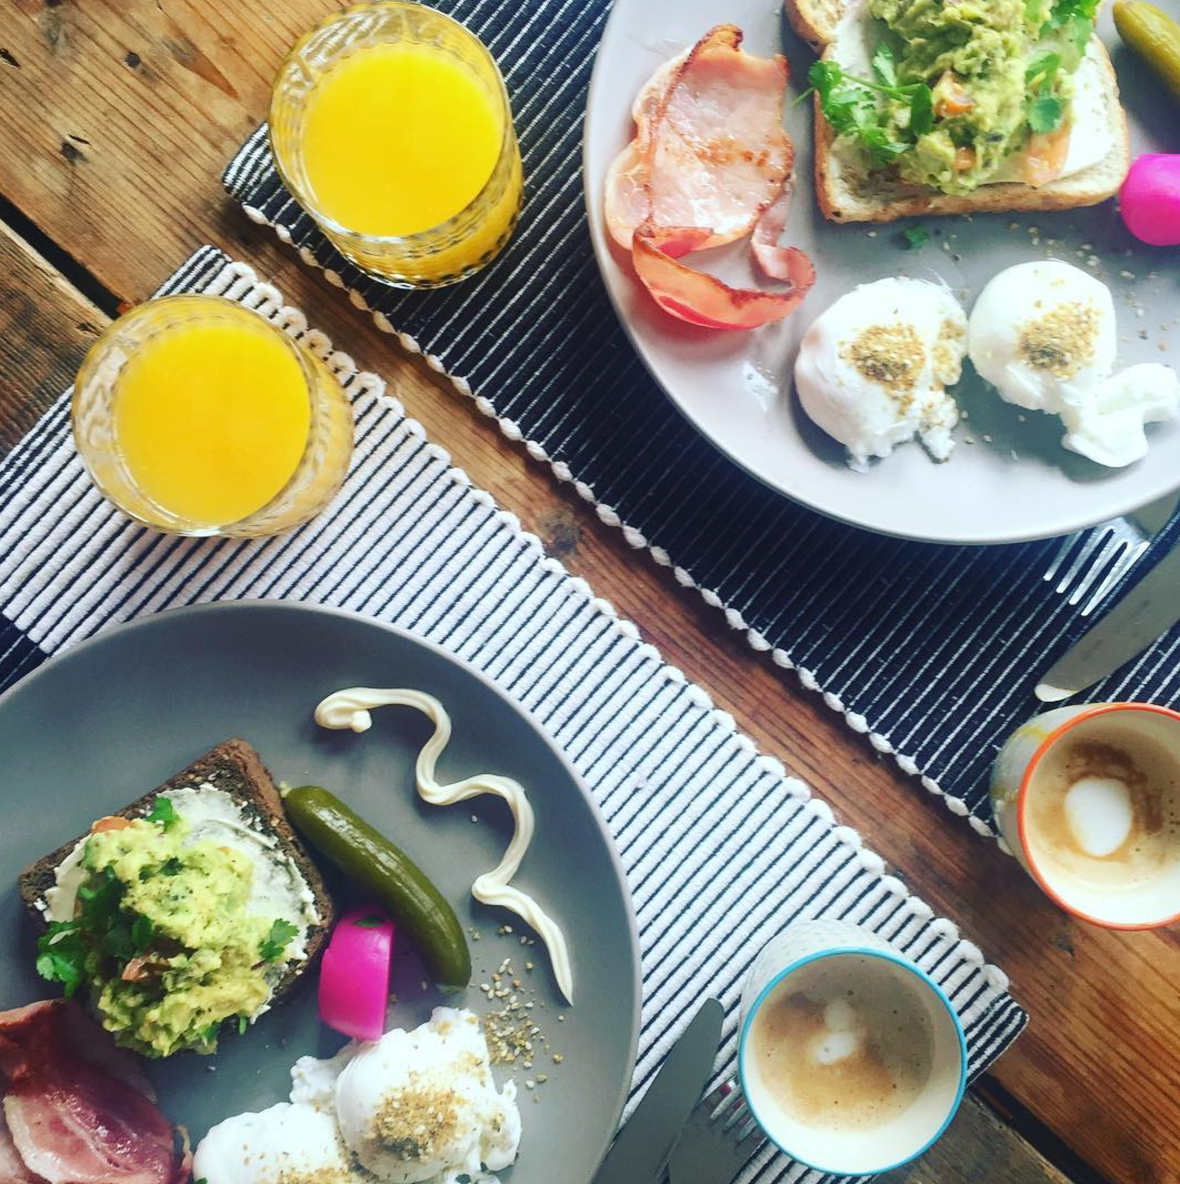 All things bright and beautiful..breakfast art!